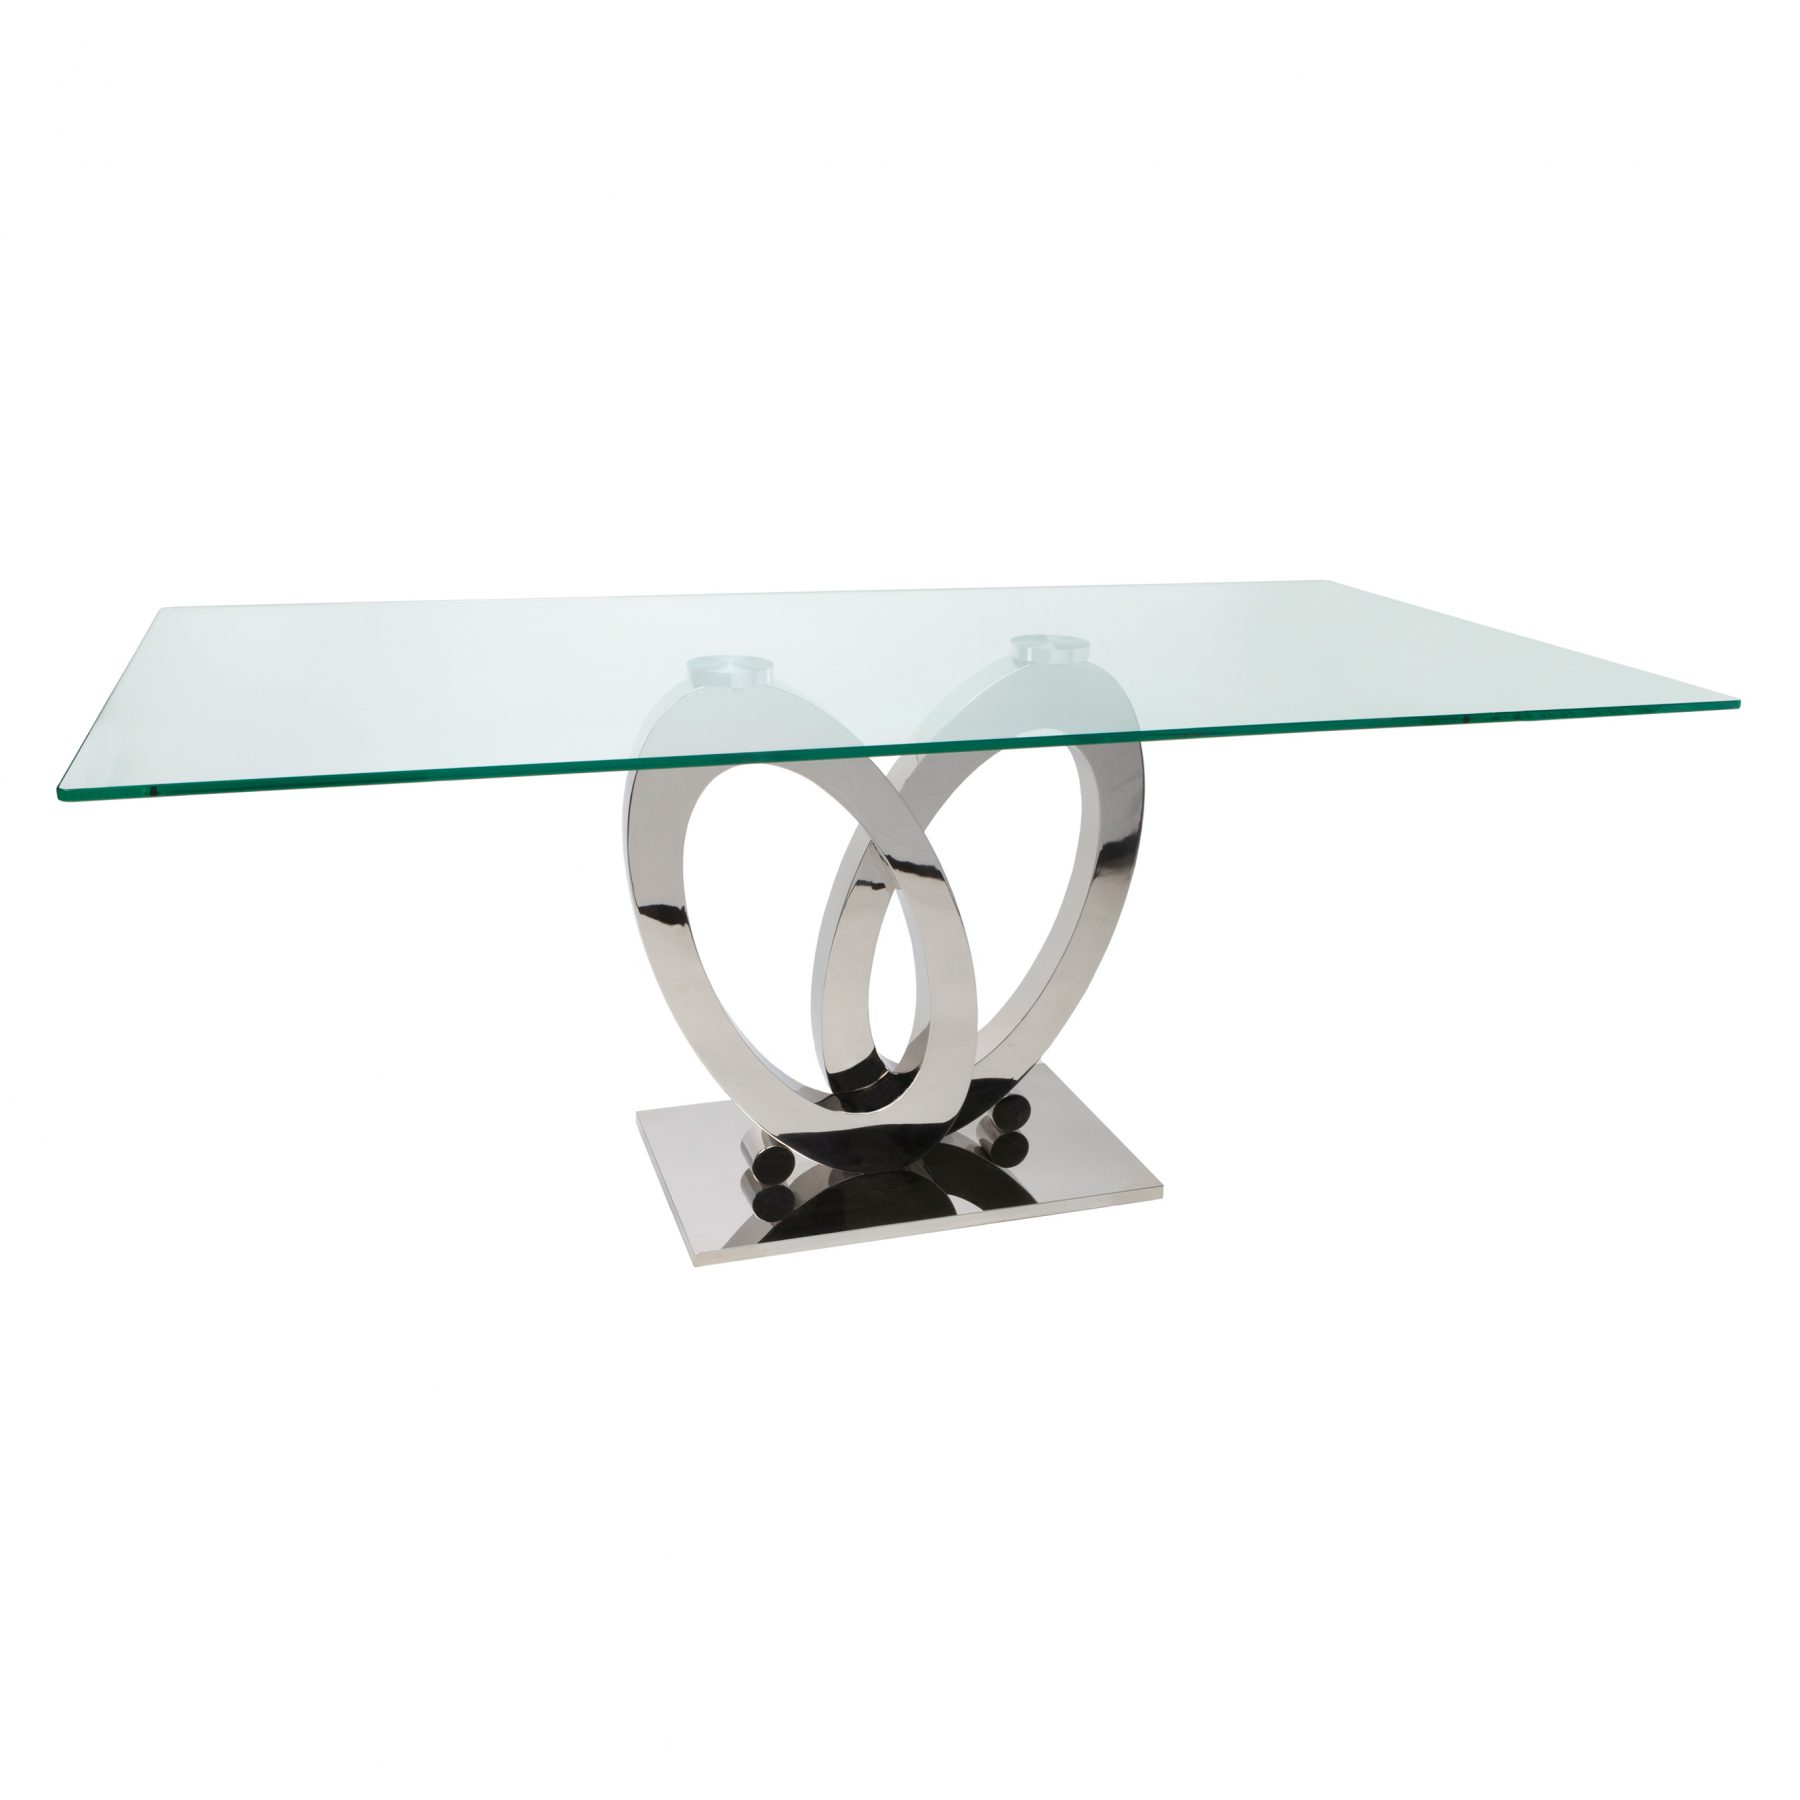 Orion Glass and Stainless Steel Dining Table 6 - 8 Seater